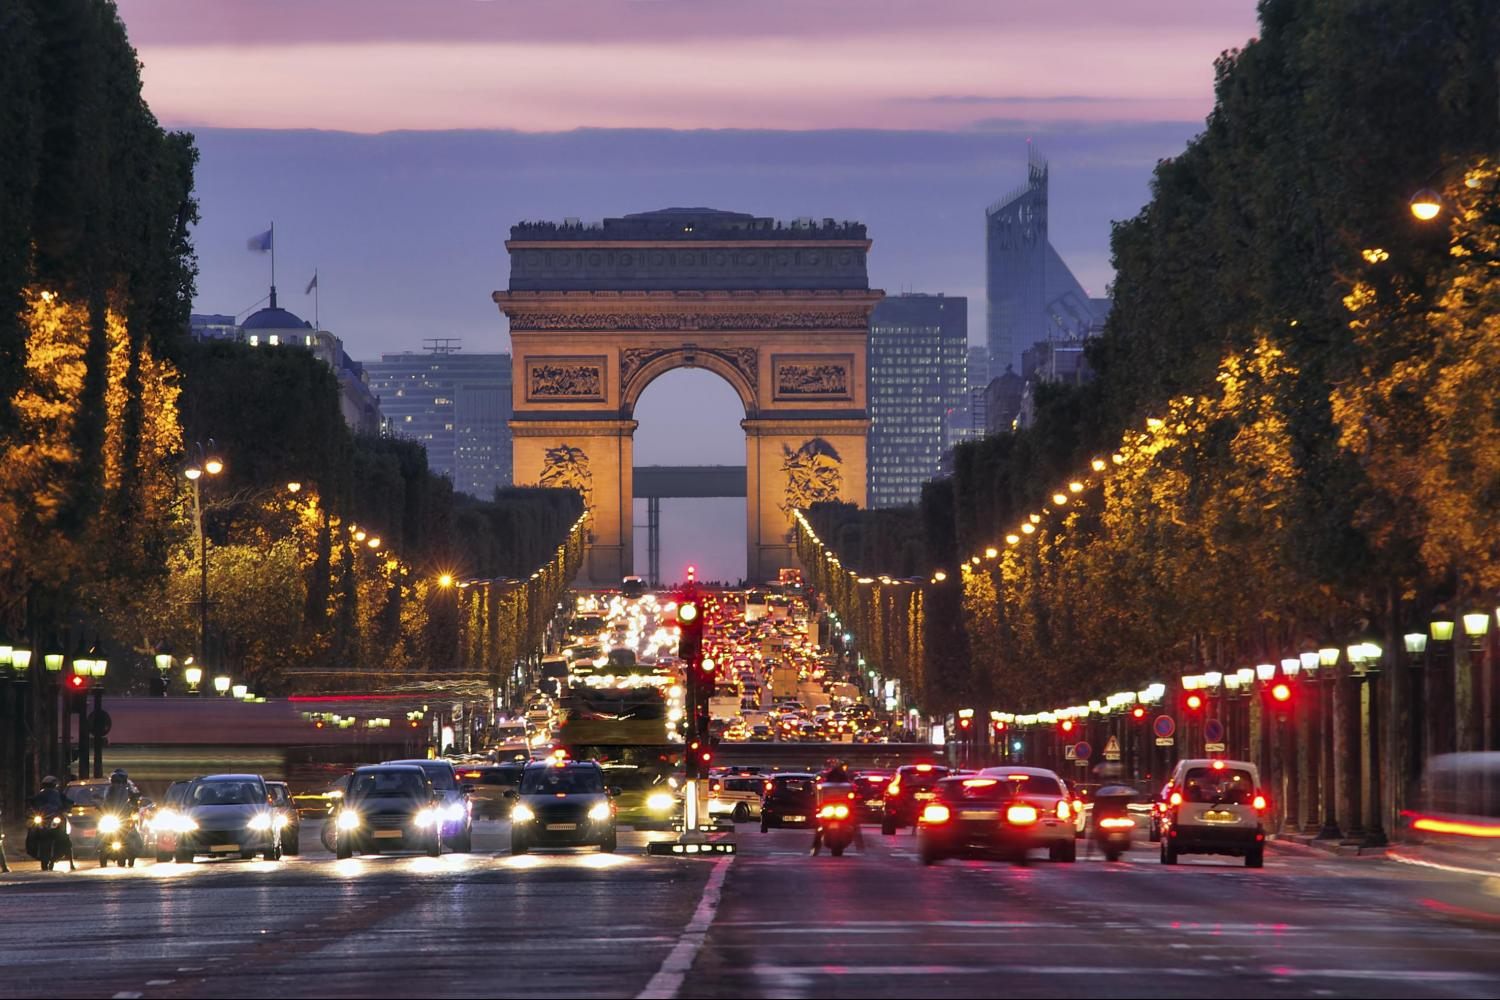 #ParisTourism - #Vacation And Travel Packages #France #FrizeMedia